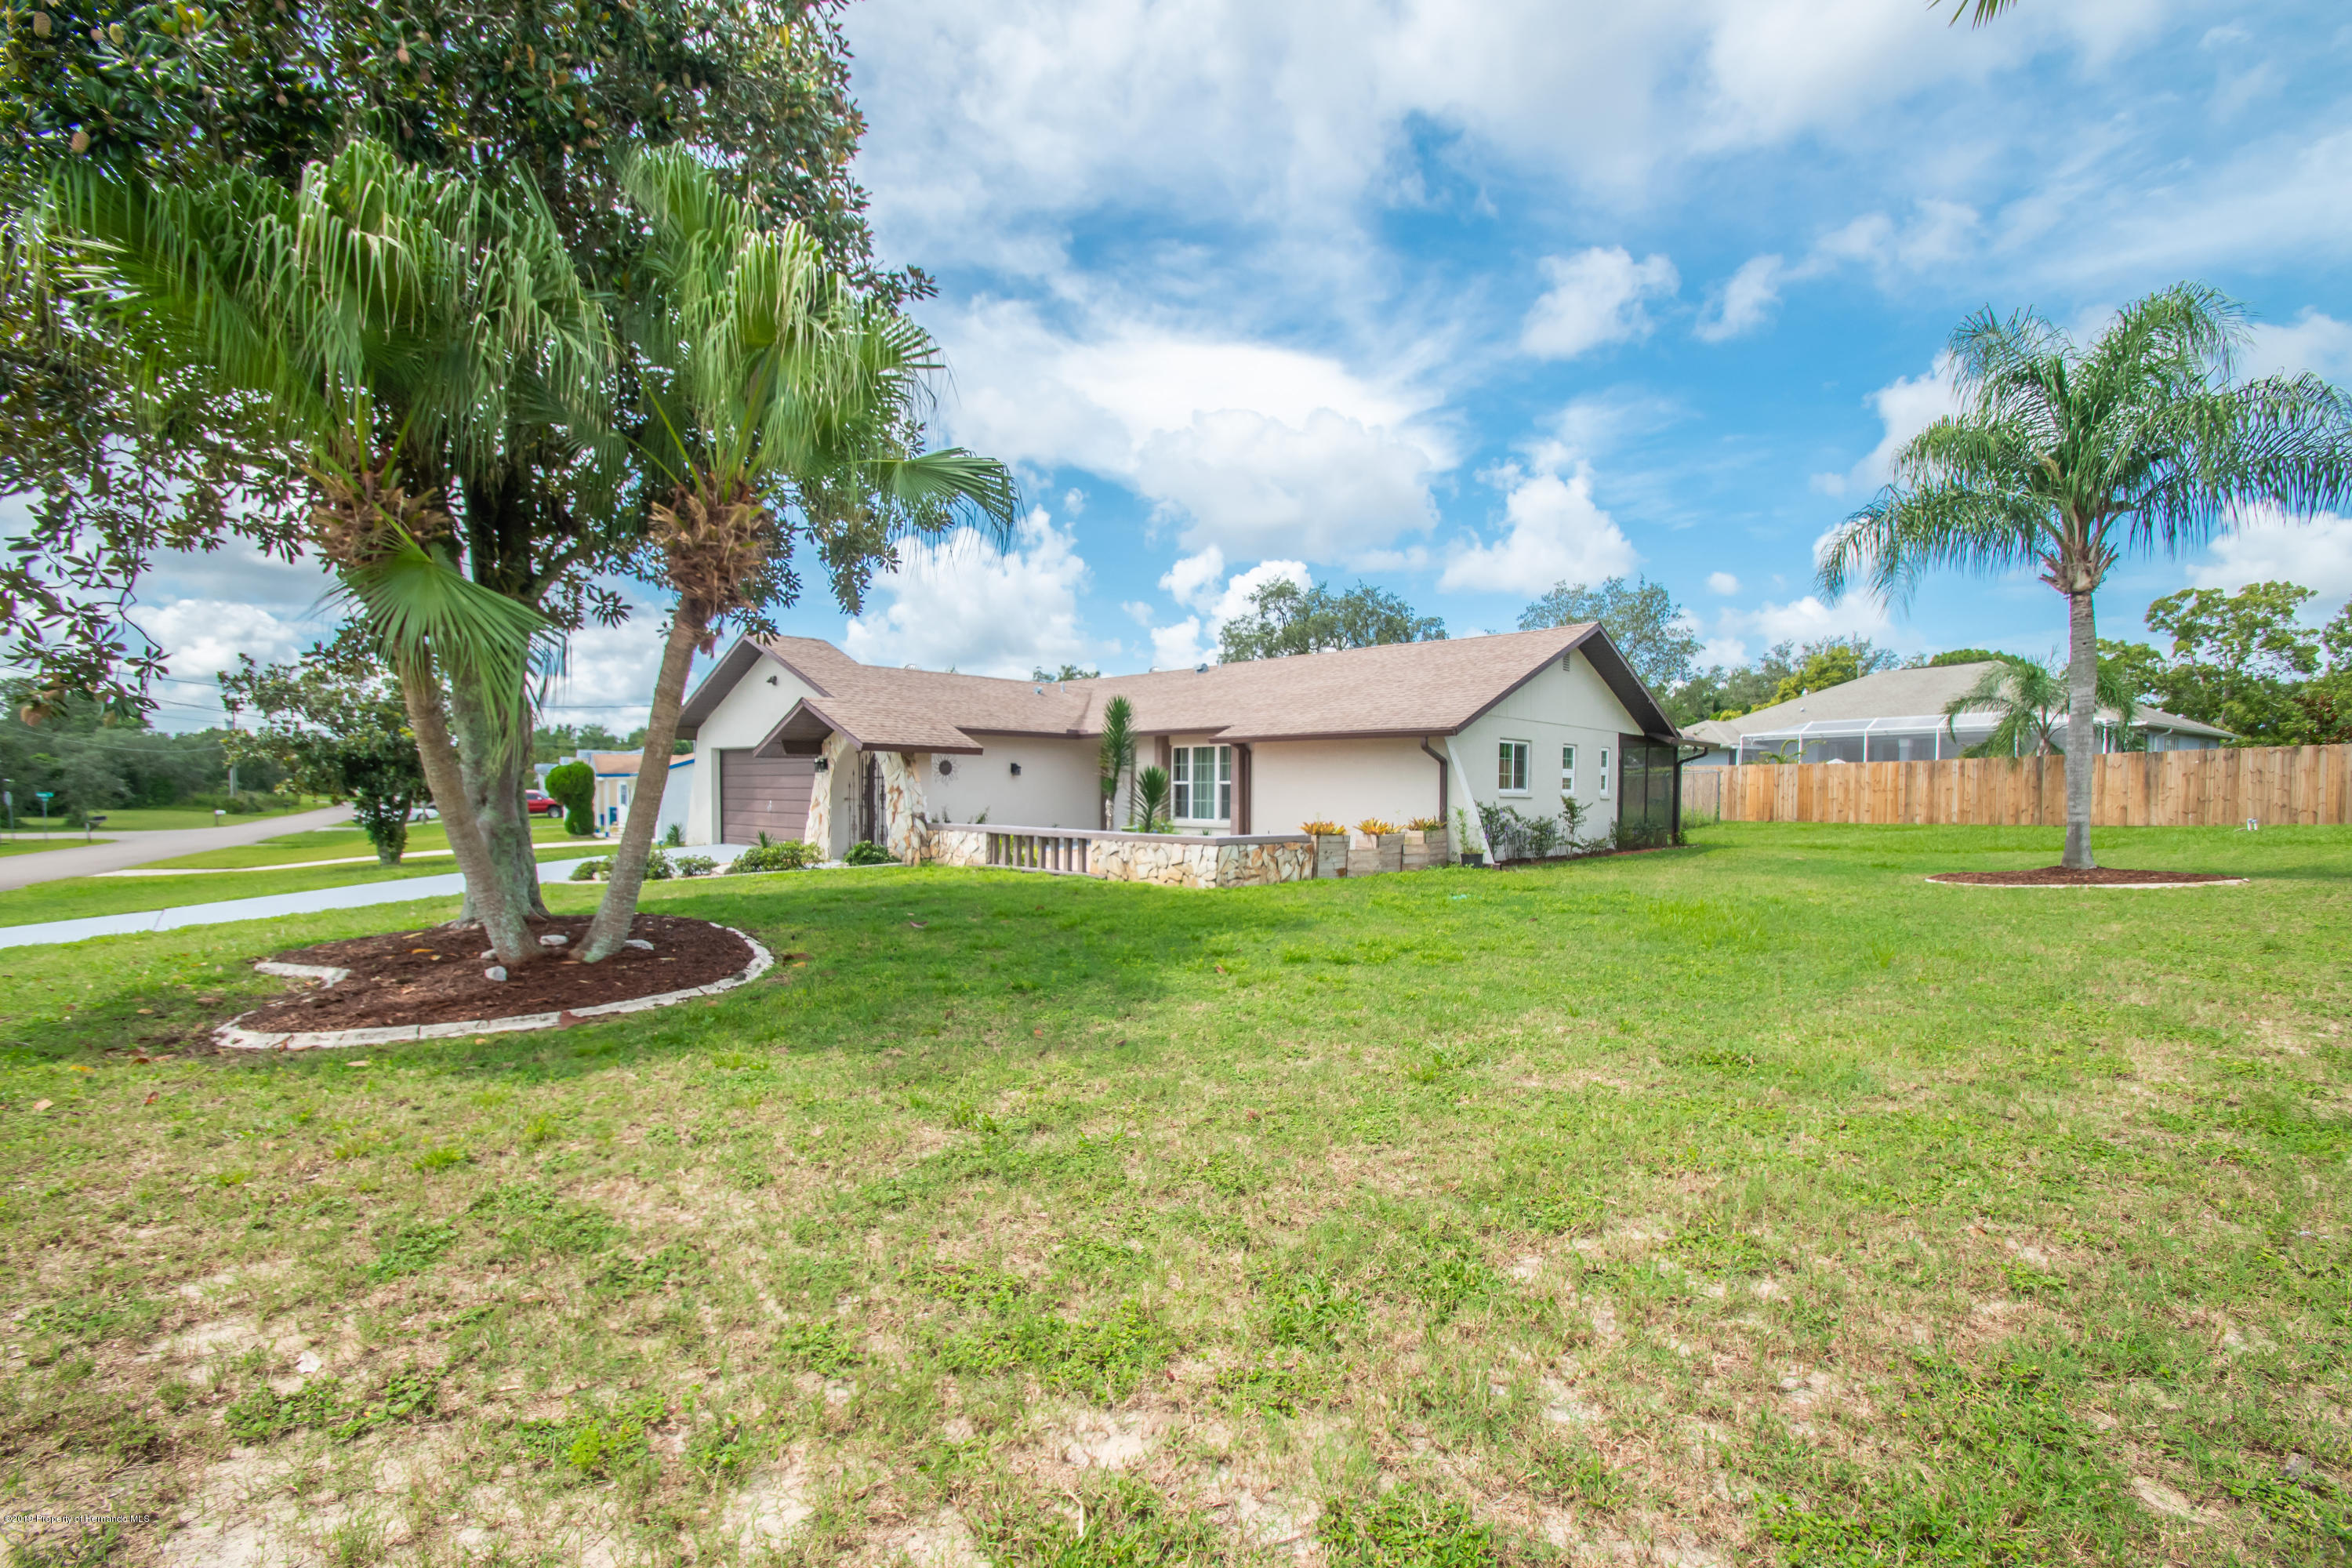 1415 Henry Avenue, Spring Hill, Florida 34608, 3 Bedrooms Bedrooms, ,2 BathroomsBathrooms,Residential,For Sale,Henry,2203168